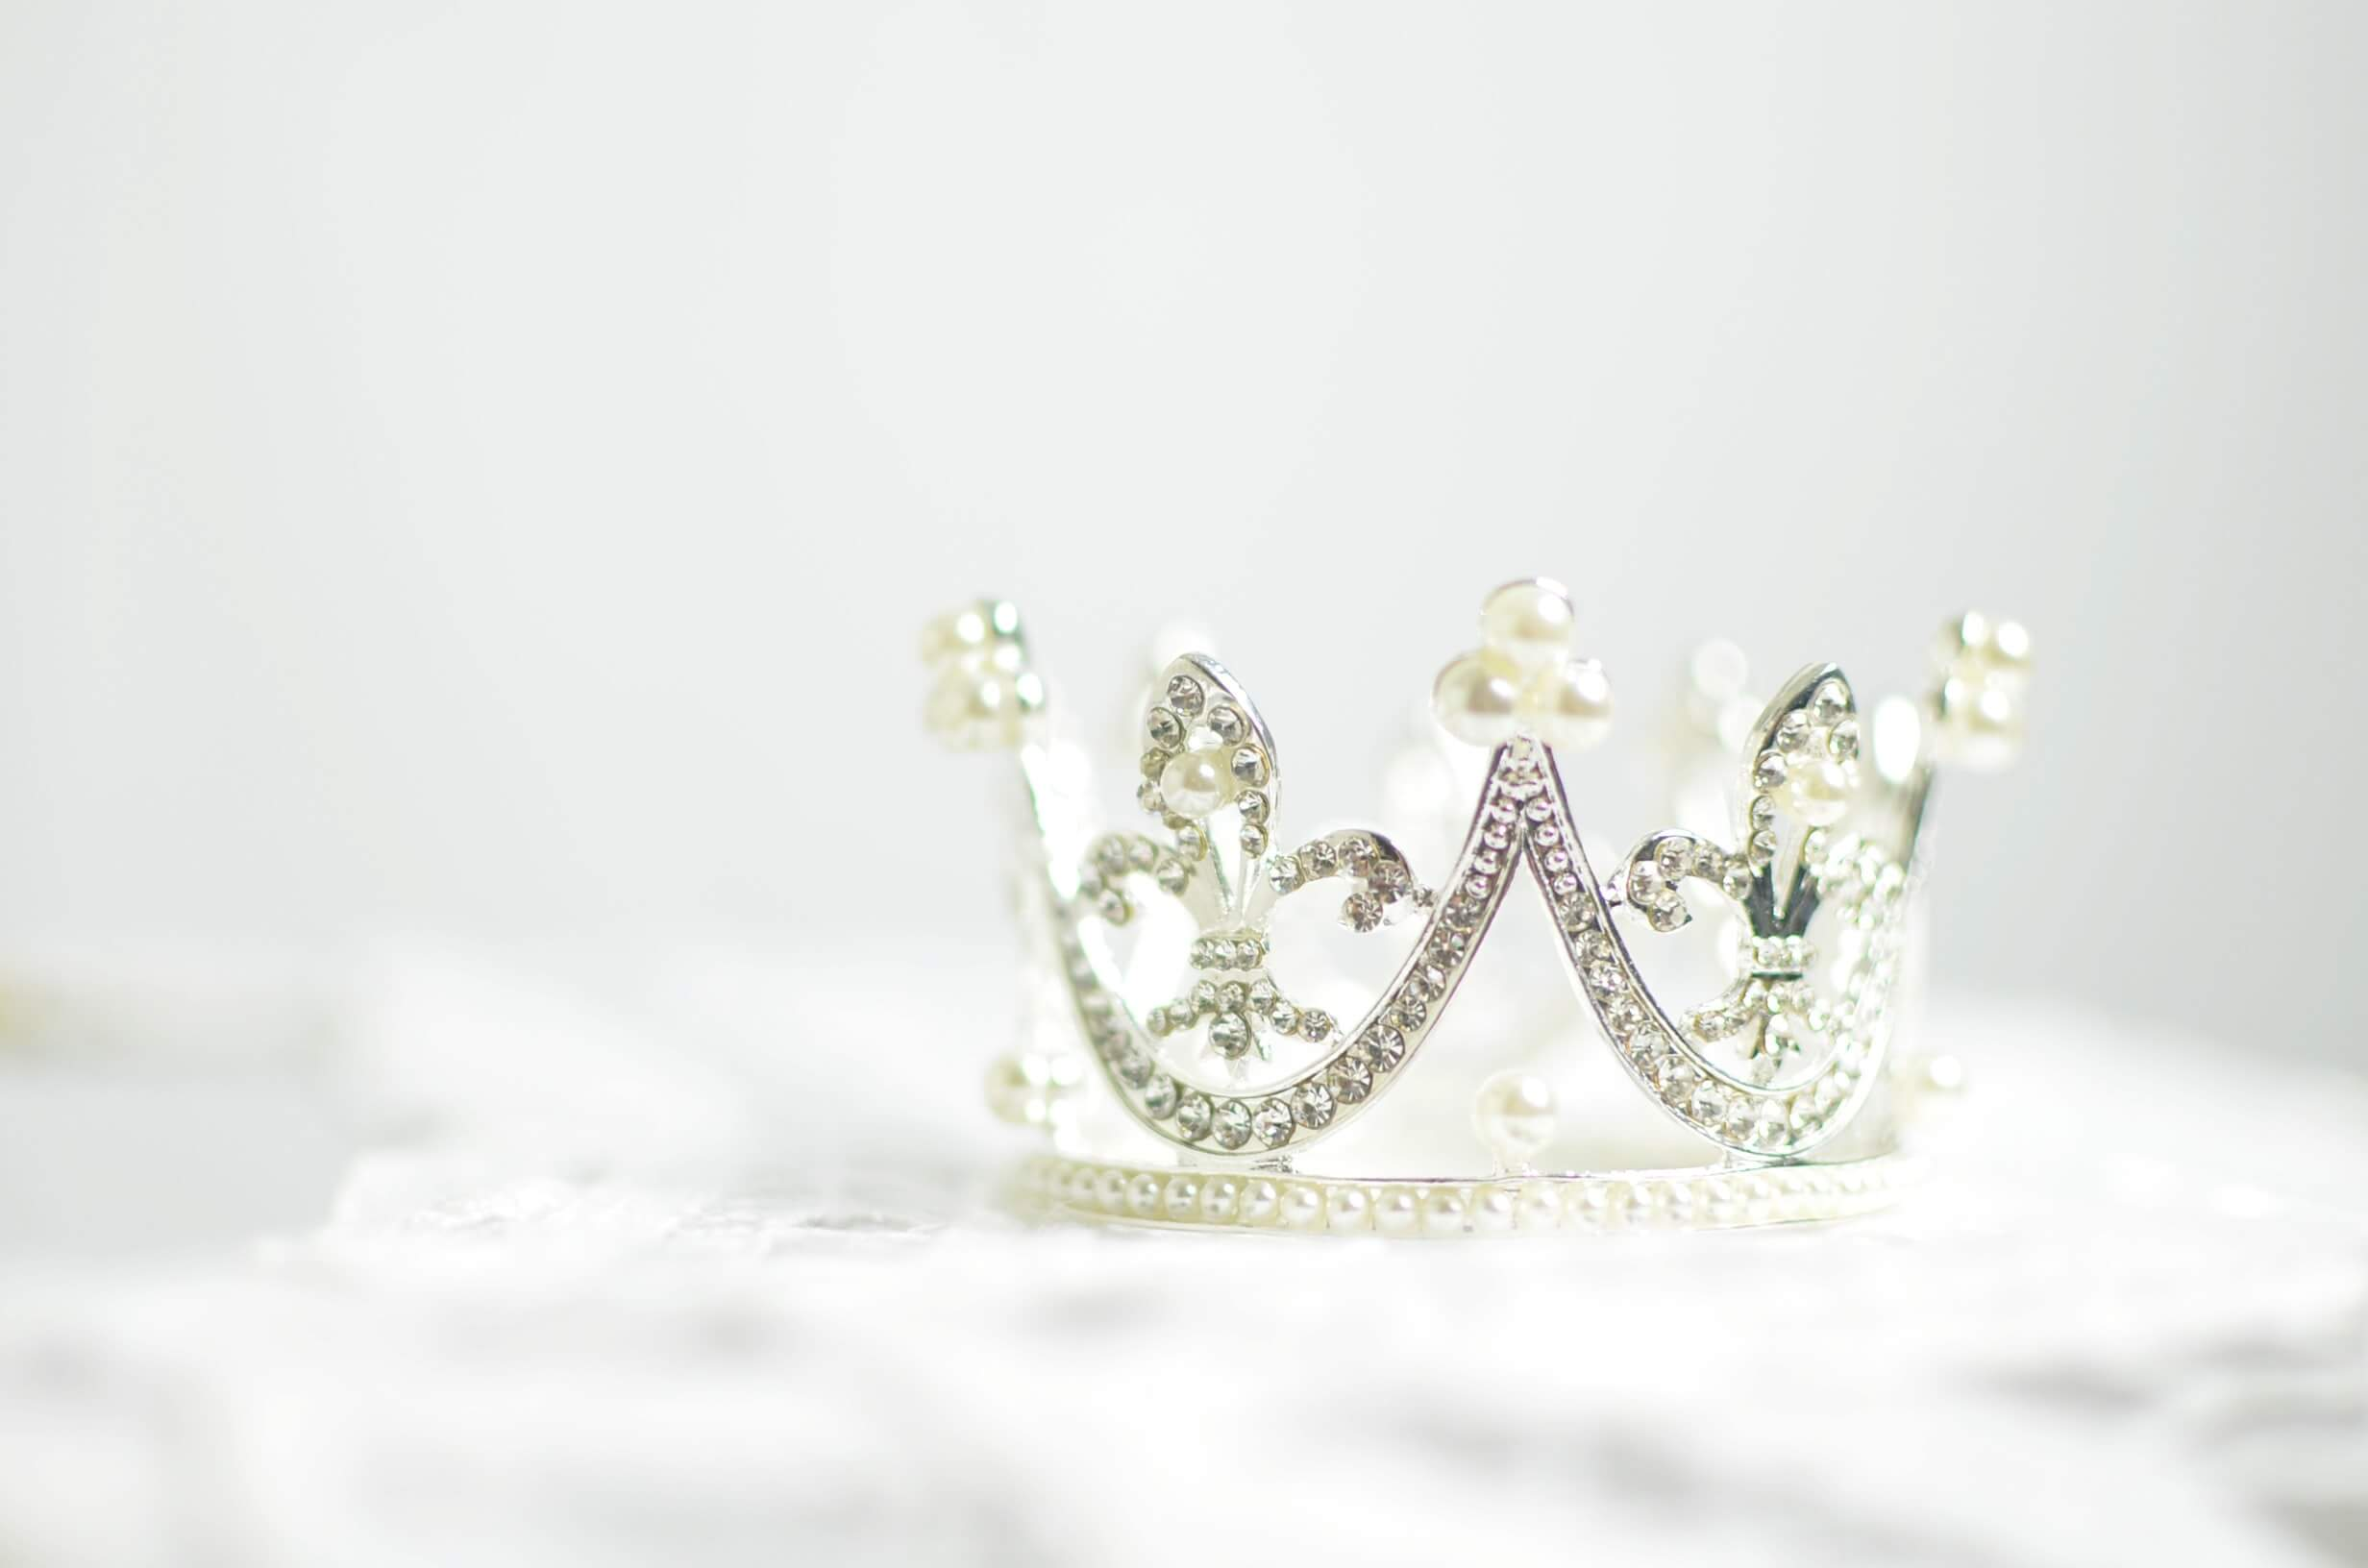 Content is King Cemoh blog